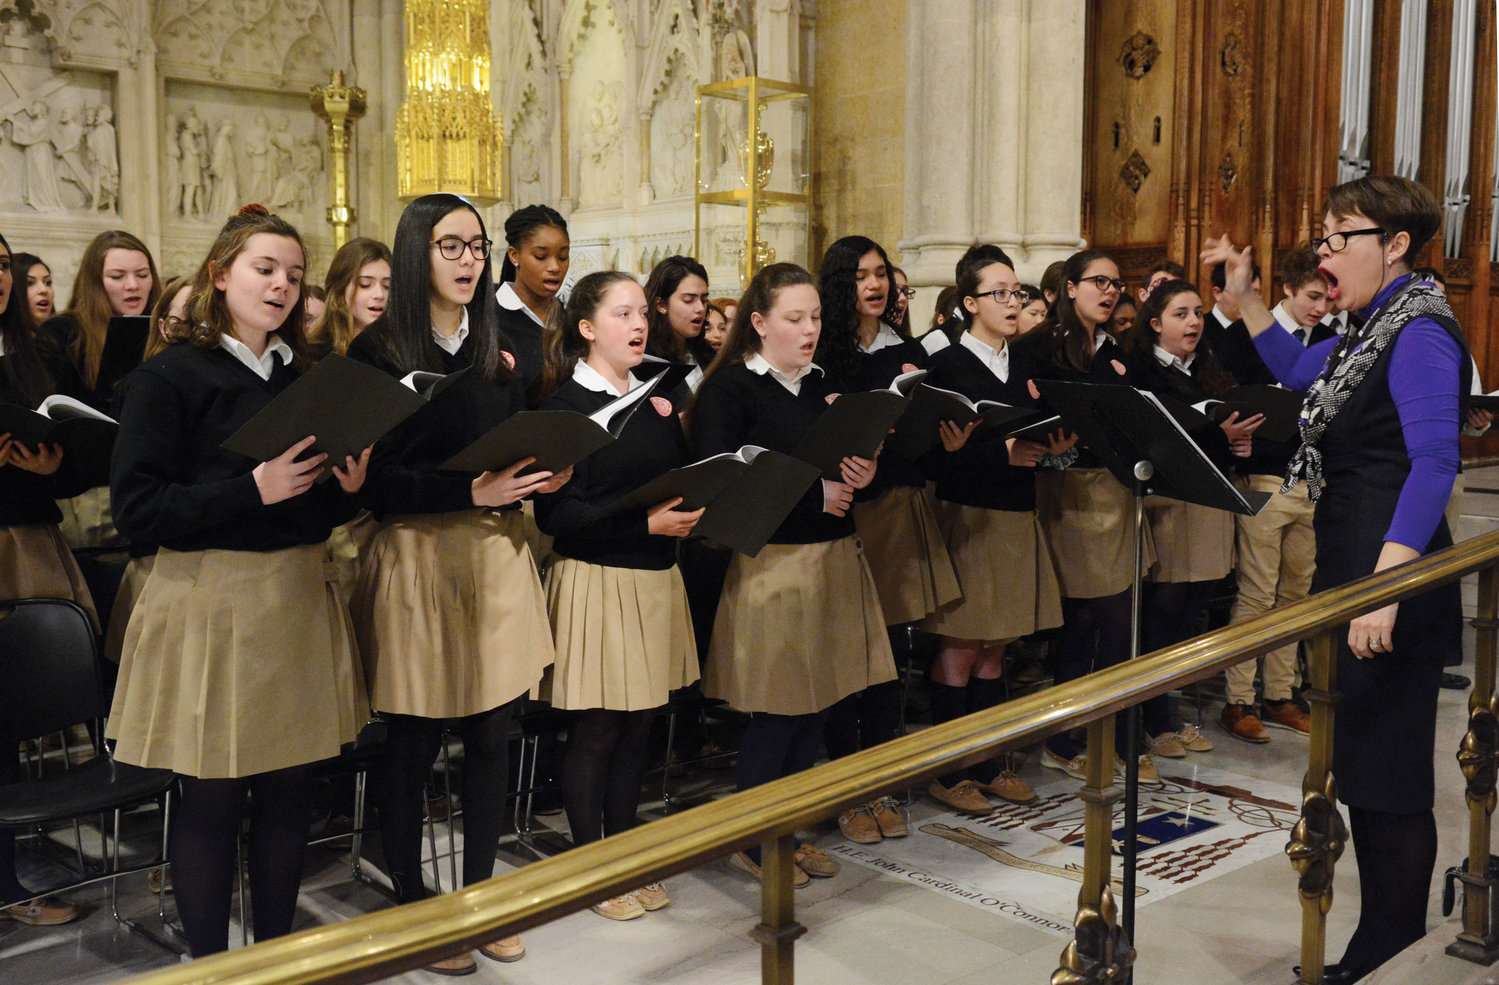 The choir of John F. Kennedy Catholic High School in Somers, under the direction of Ines Wilhelm-Boston, raises their voices in song April 4 at the Mass for the Class of 2019 at St. Patrick's Cathedral.